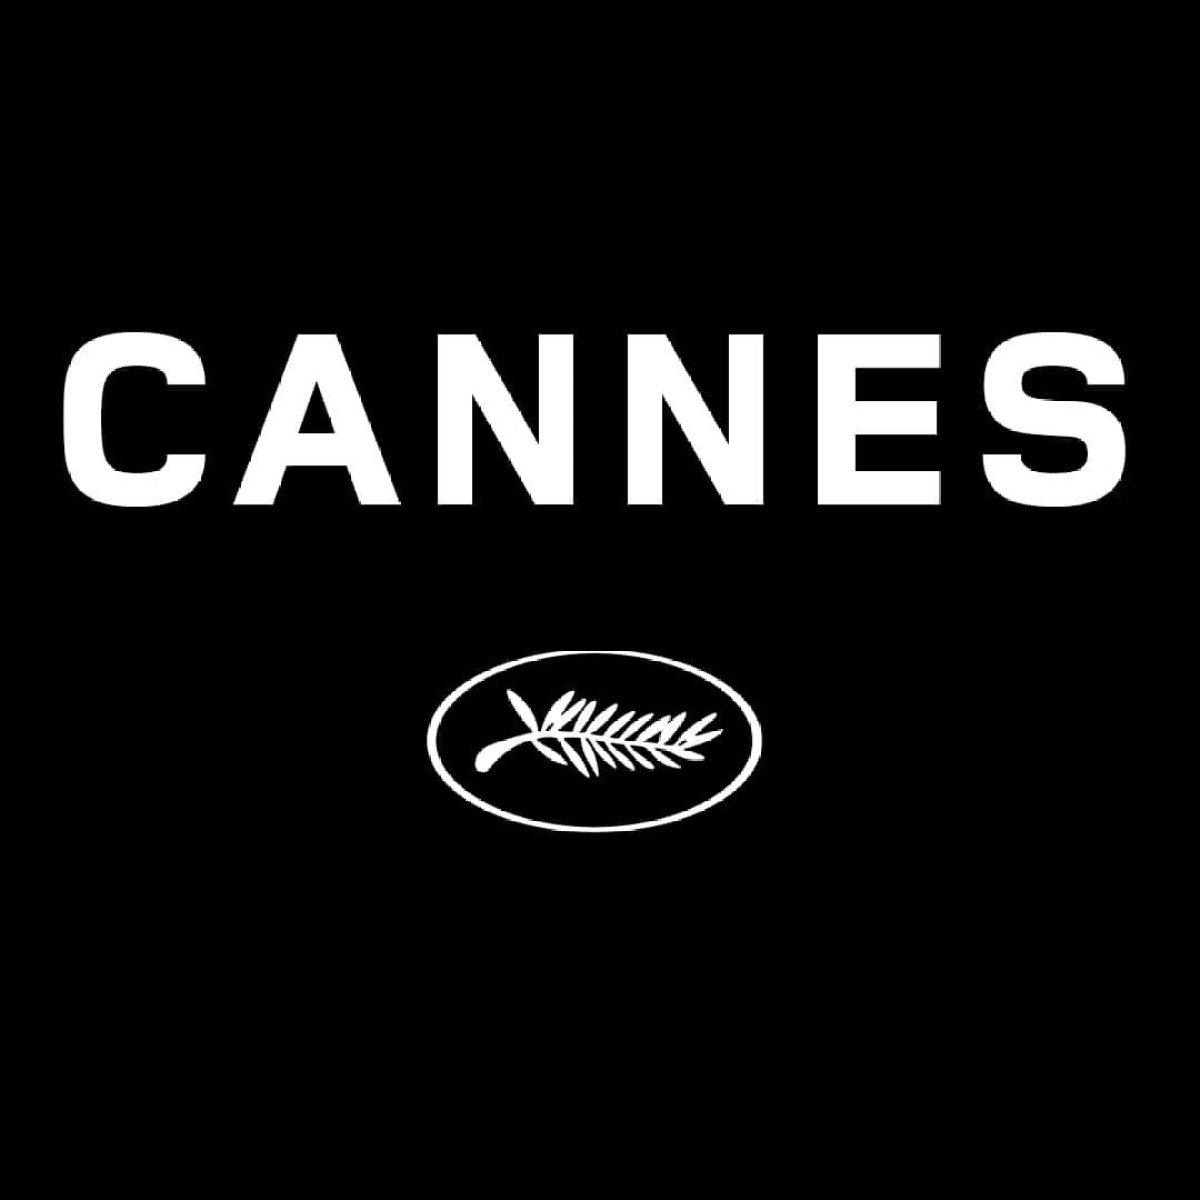 Cannes Film Festival to organise a 3-day special event in October